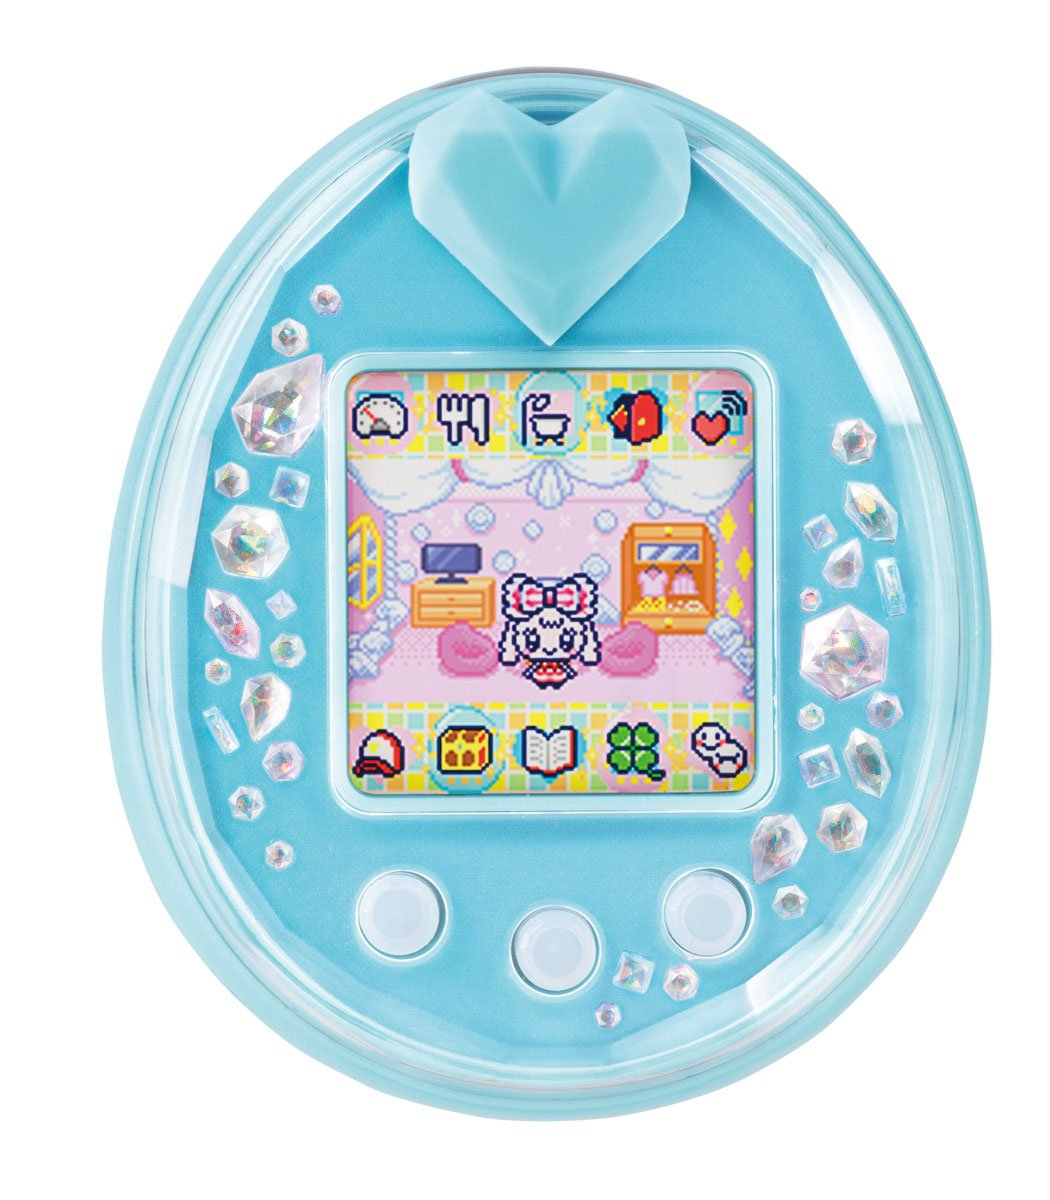 Tamagotchi P's Blue [Toy] (japan import) Bandai